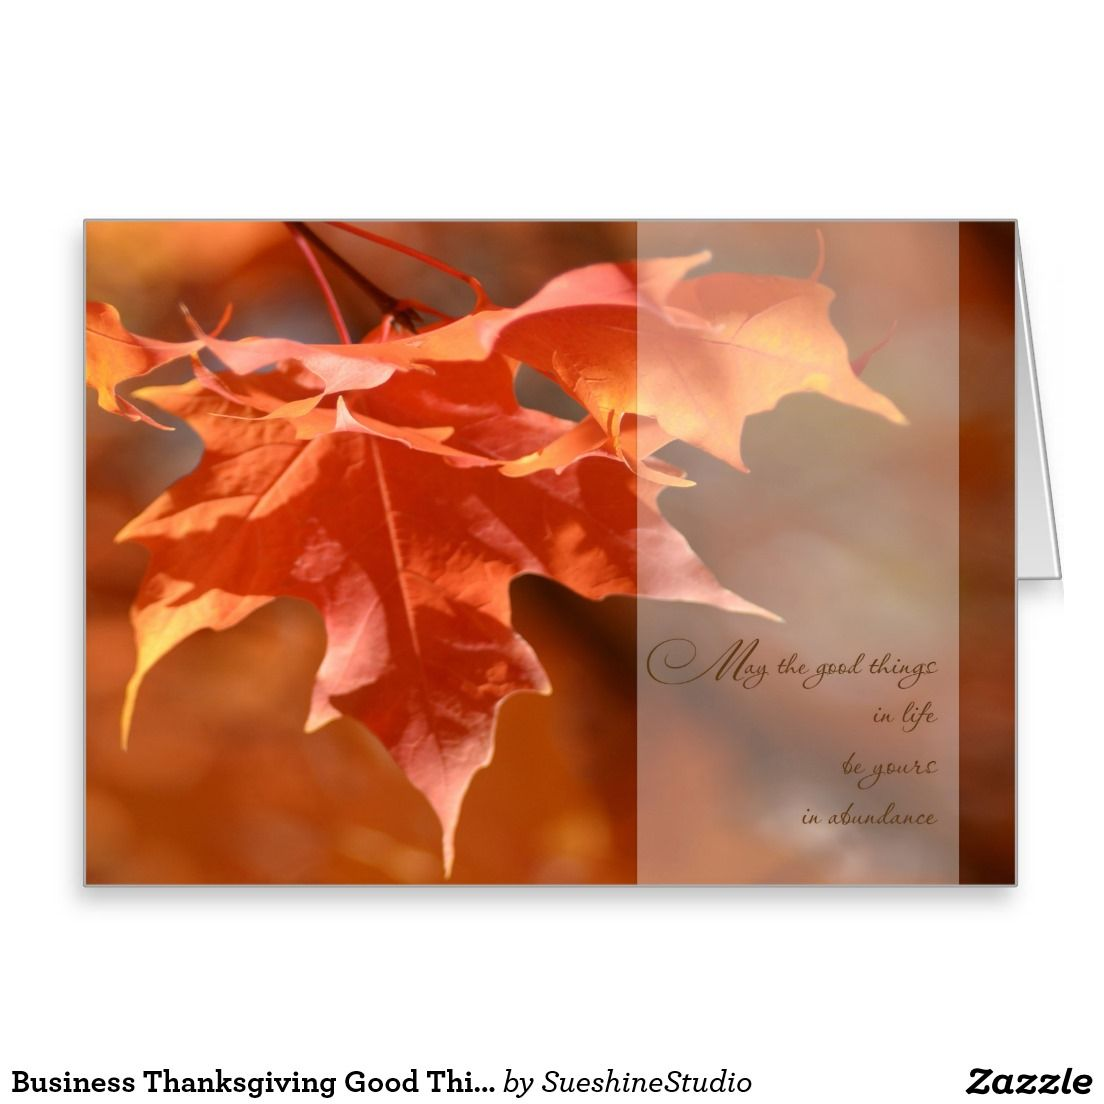 Business Thanksgiving Good Things in Life Greeting Card